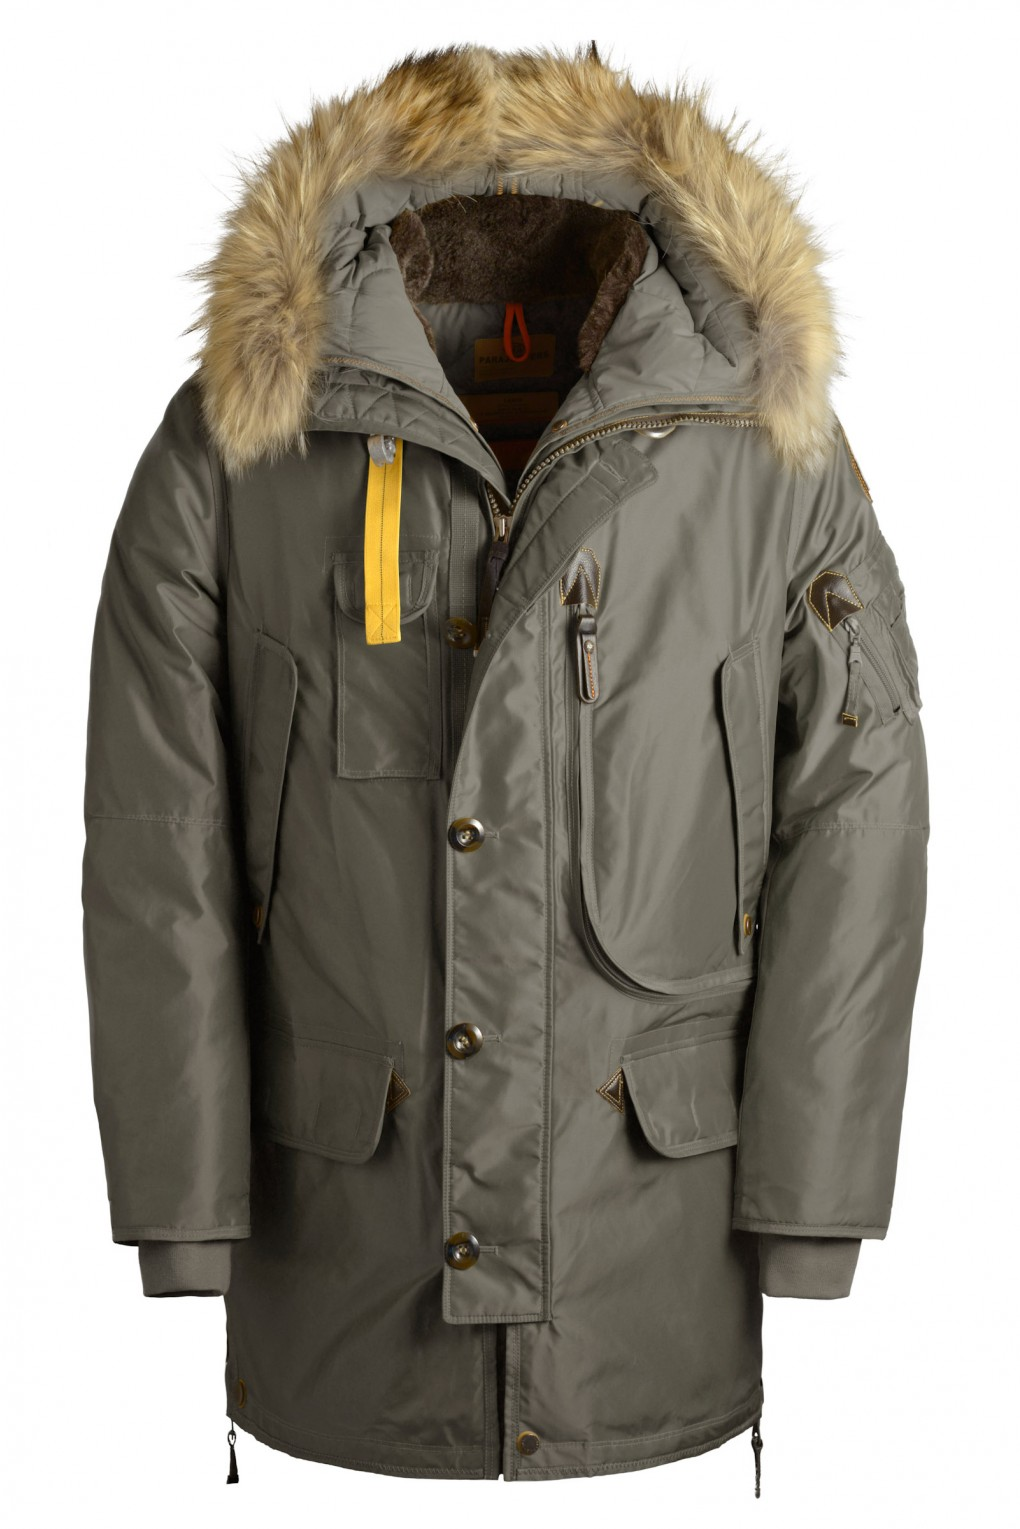 parajumpers KODIAK man outerwear Sage